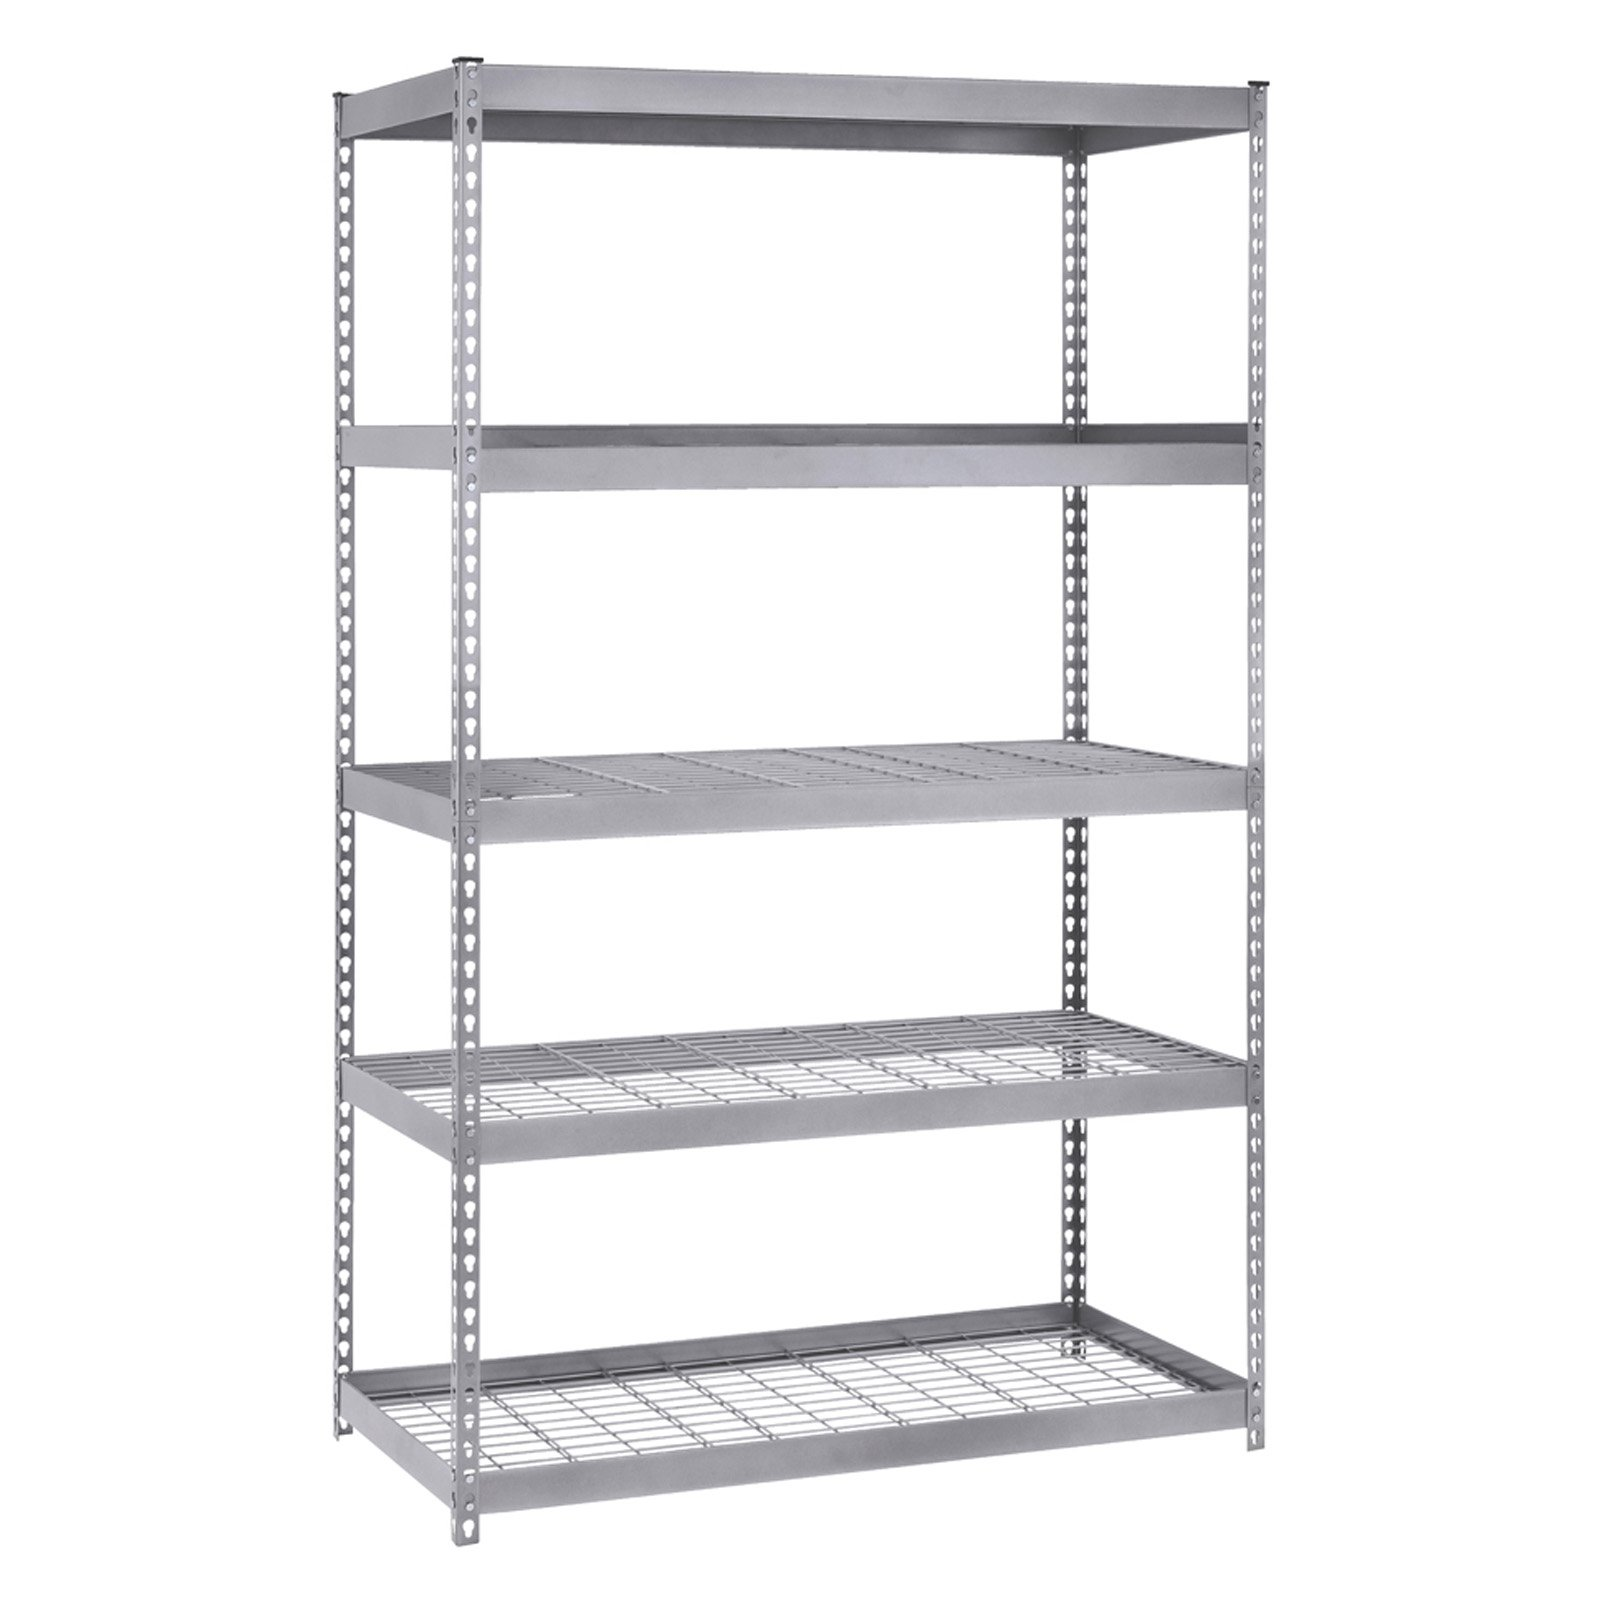 Find amazing Cyber Monday sales on Walmart garage shelving and other Walmart deals on Shop Better Homes & Gardens.